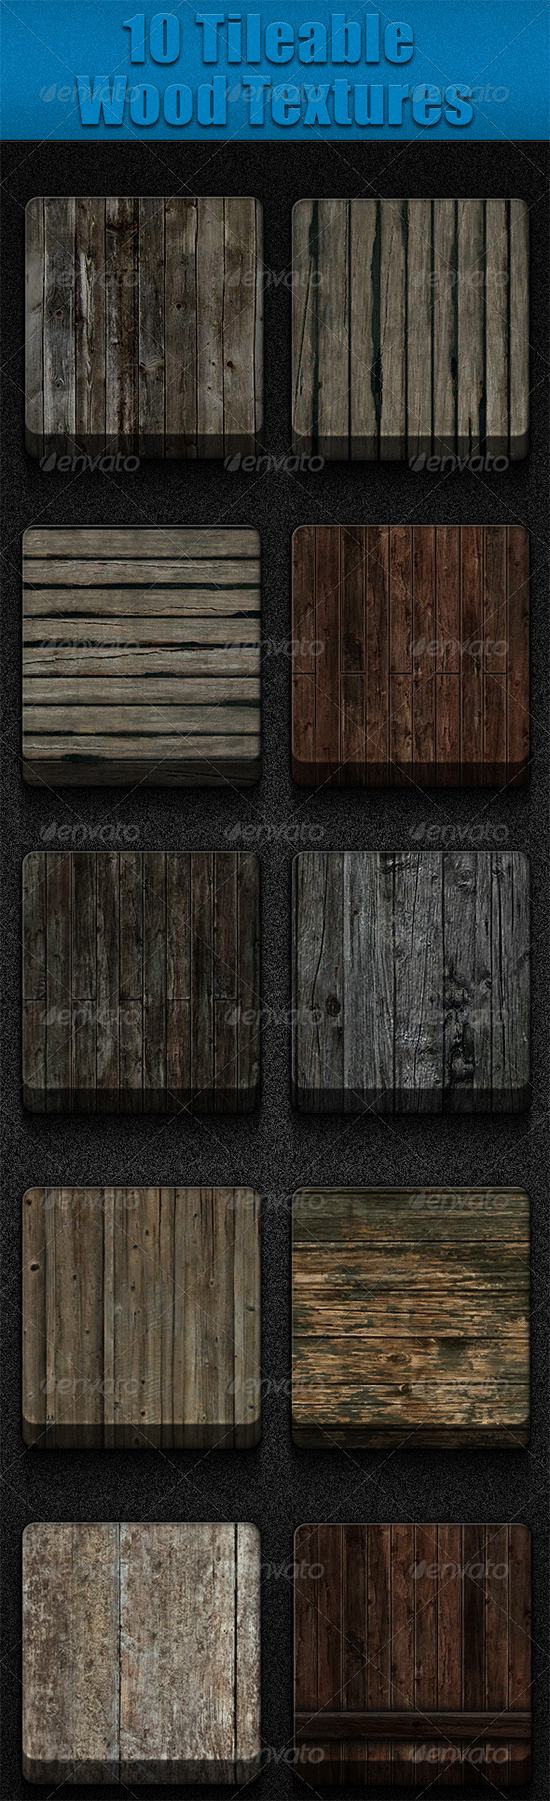 10 tileable wood textures